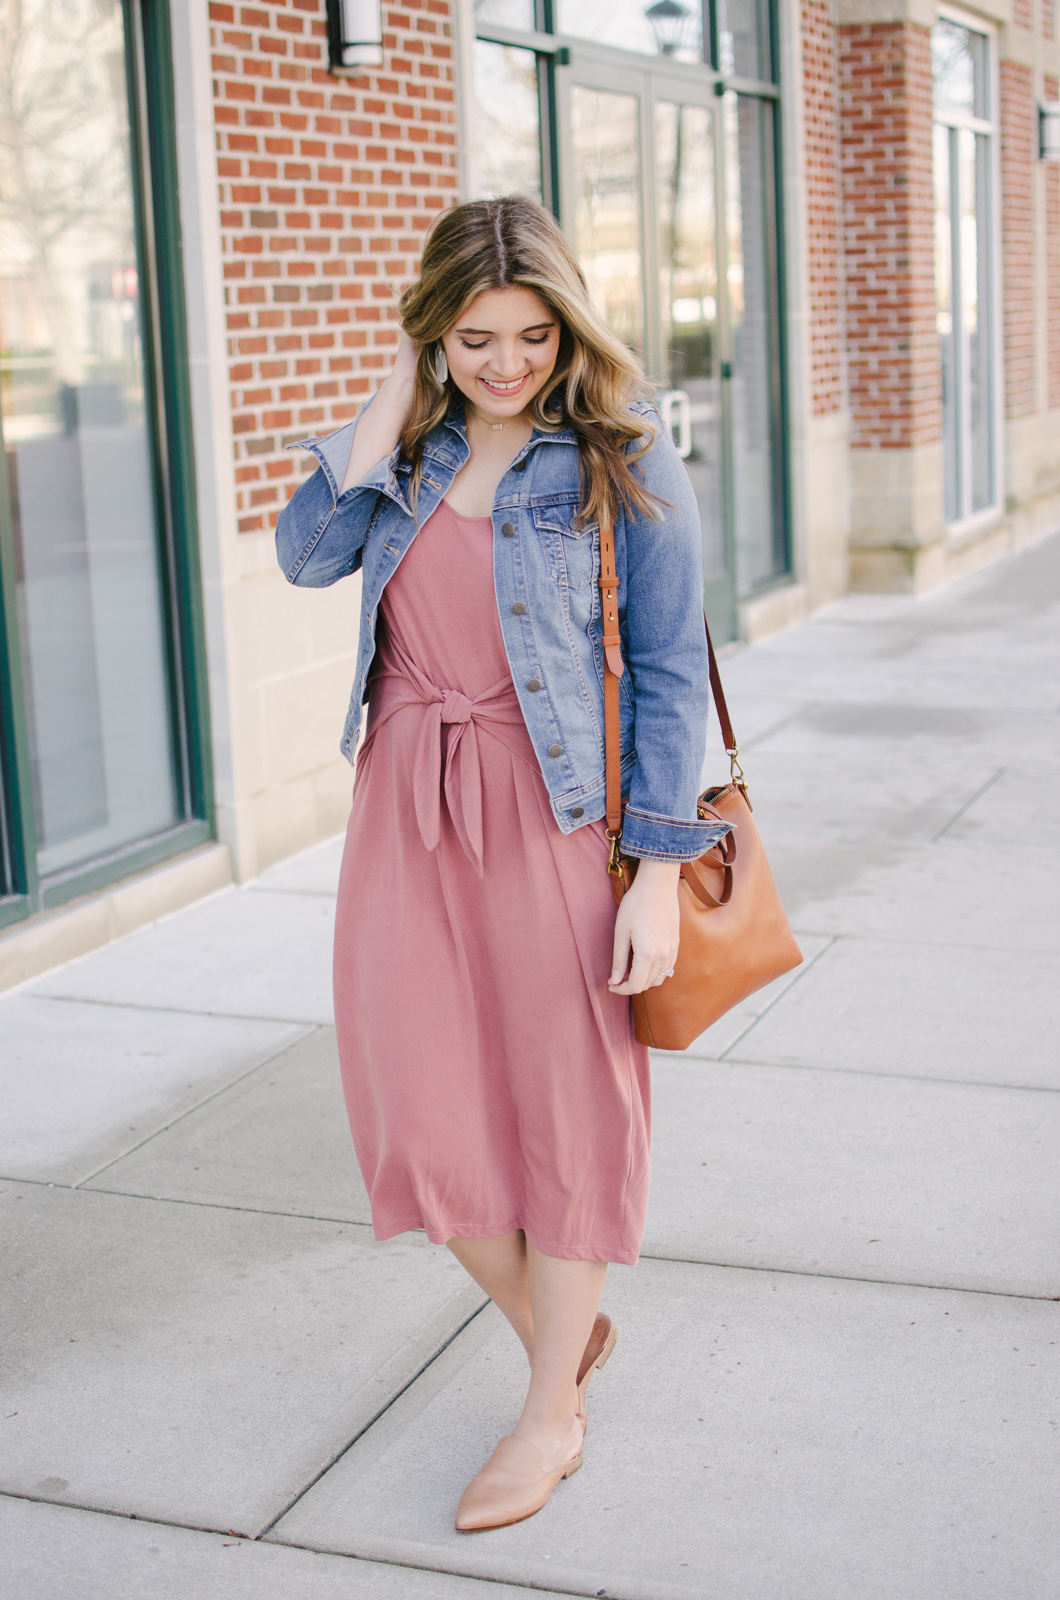 spring outfit midi dress - knotted midi dress | Get outfit details for this spring midi dress outfit or see more cute spring outfit ideas at bylaurenm.com!